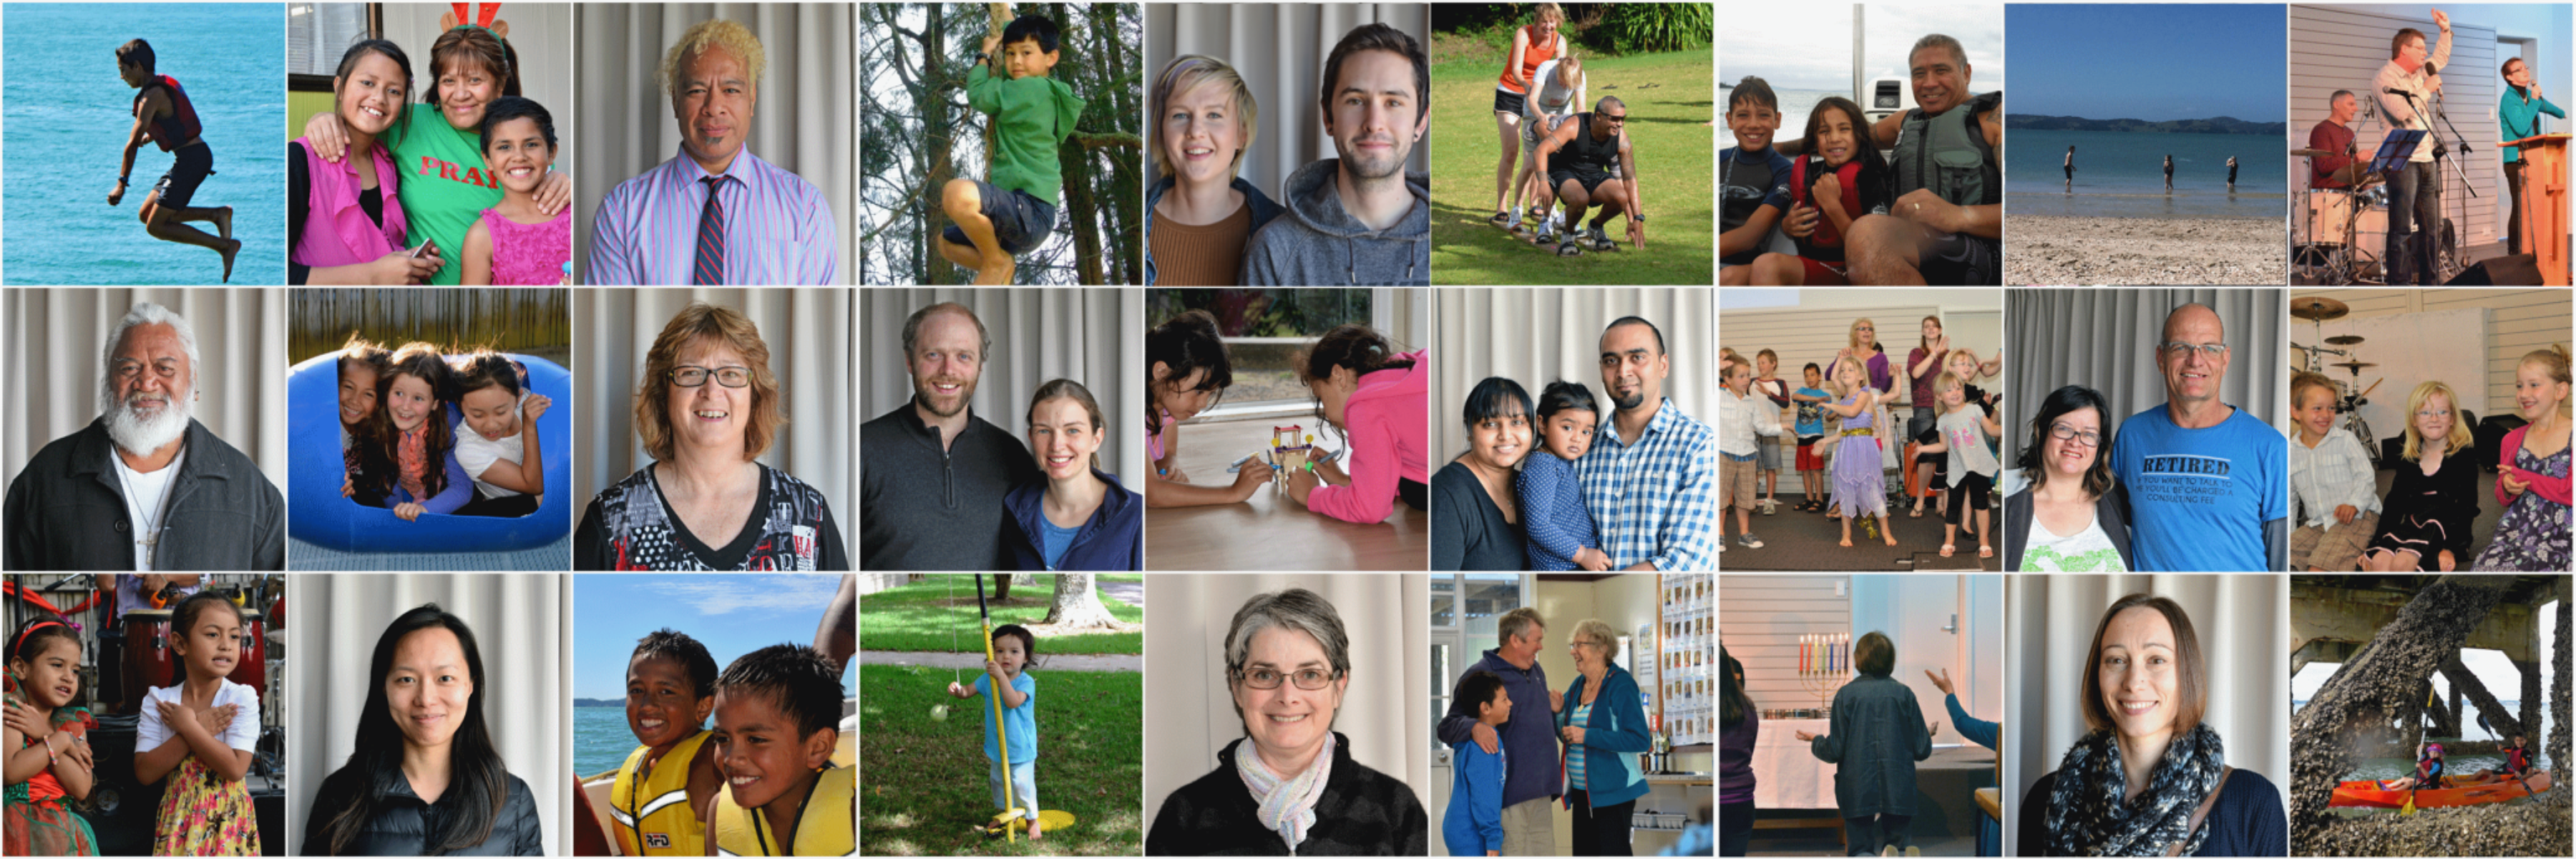 collage of photos of members of Connect Baptist Church